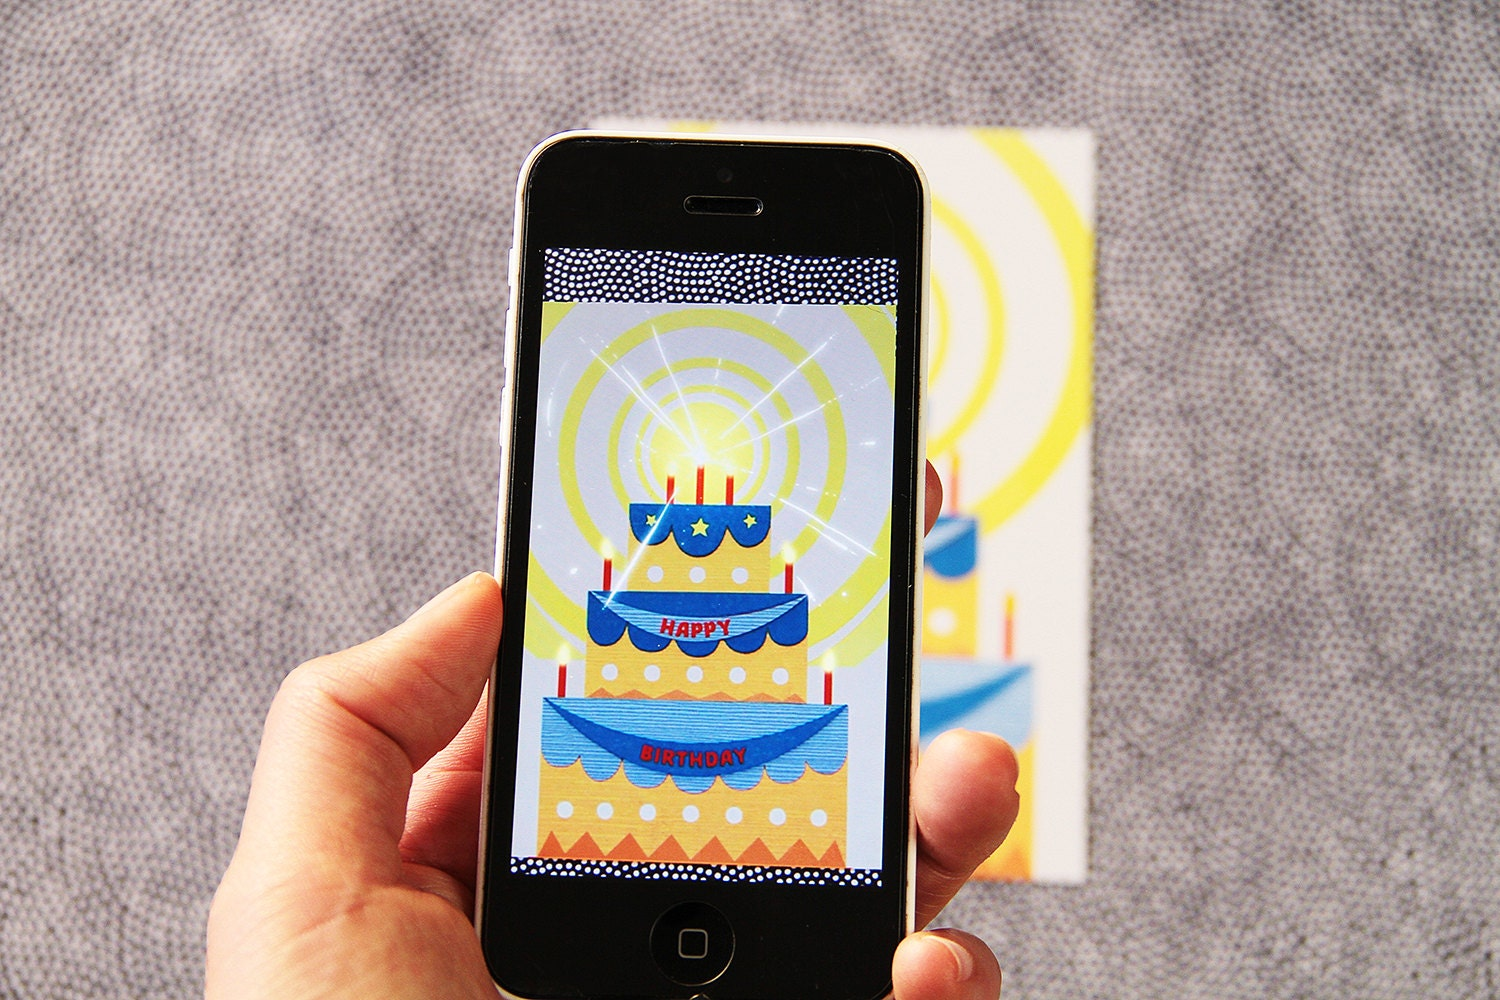 Birthday Animated Postcard Augmented Reality Card With The Free